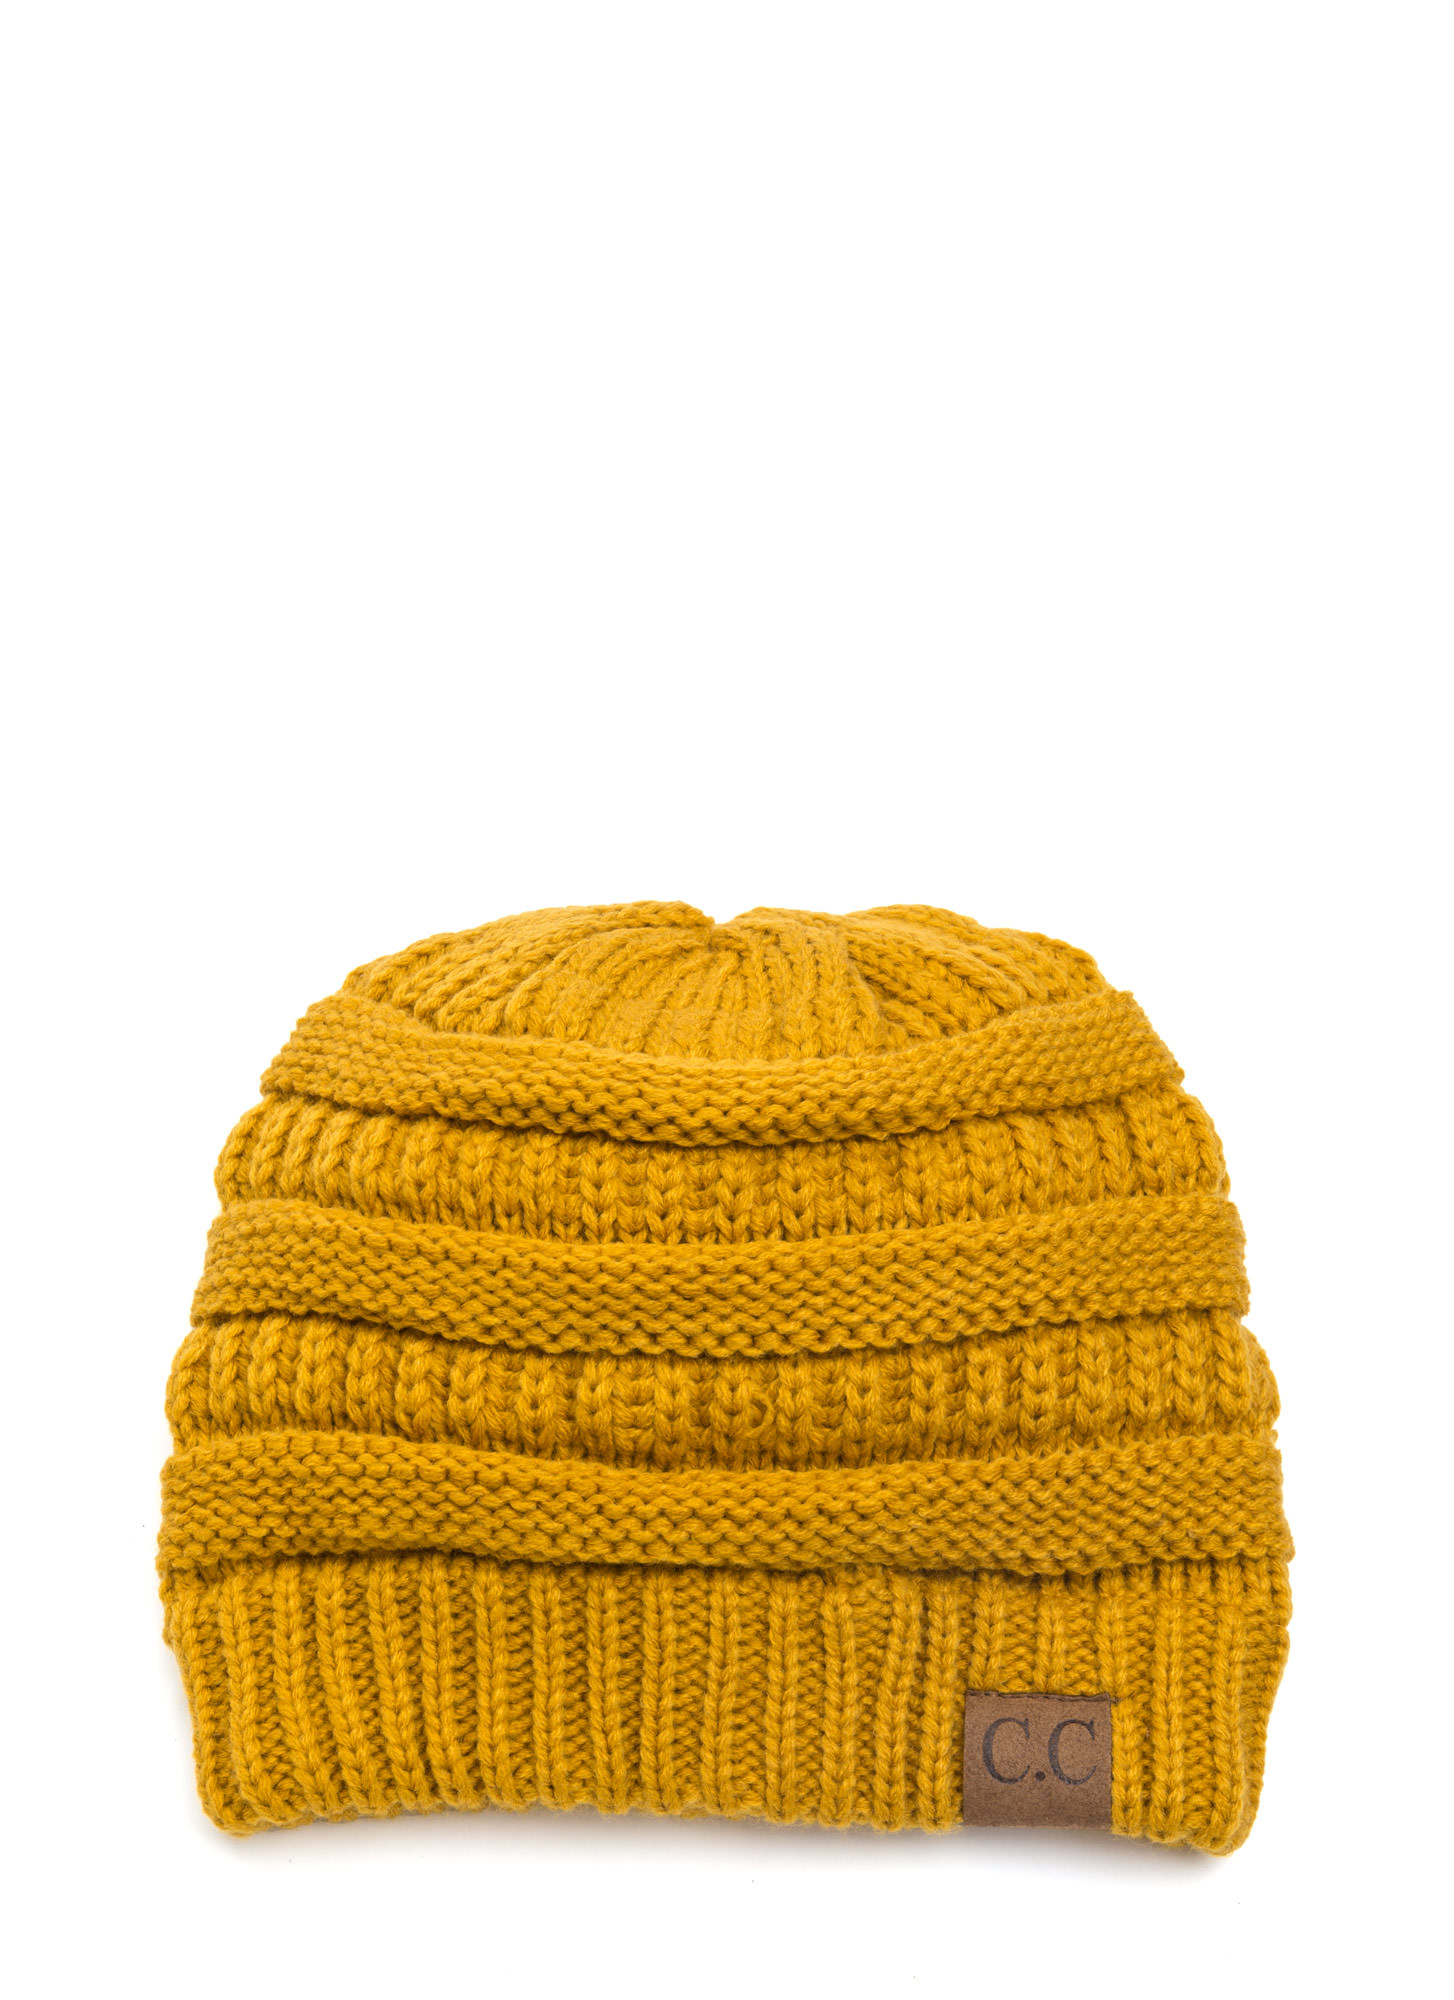 Cozy CC Cable Knit Beanie MUSTARD (Final Sale)